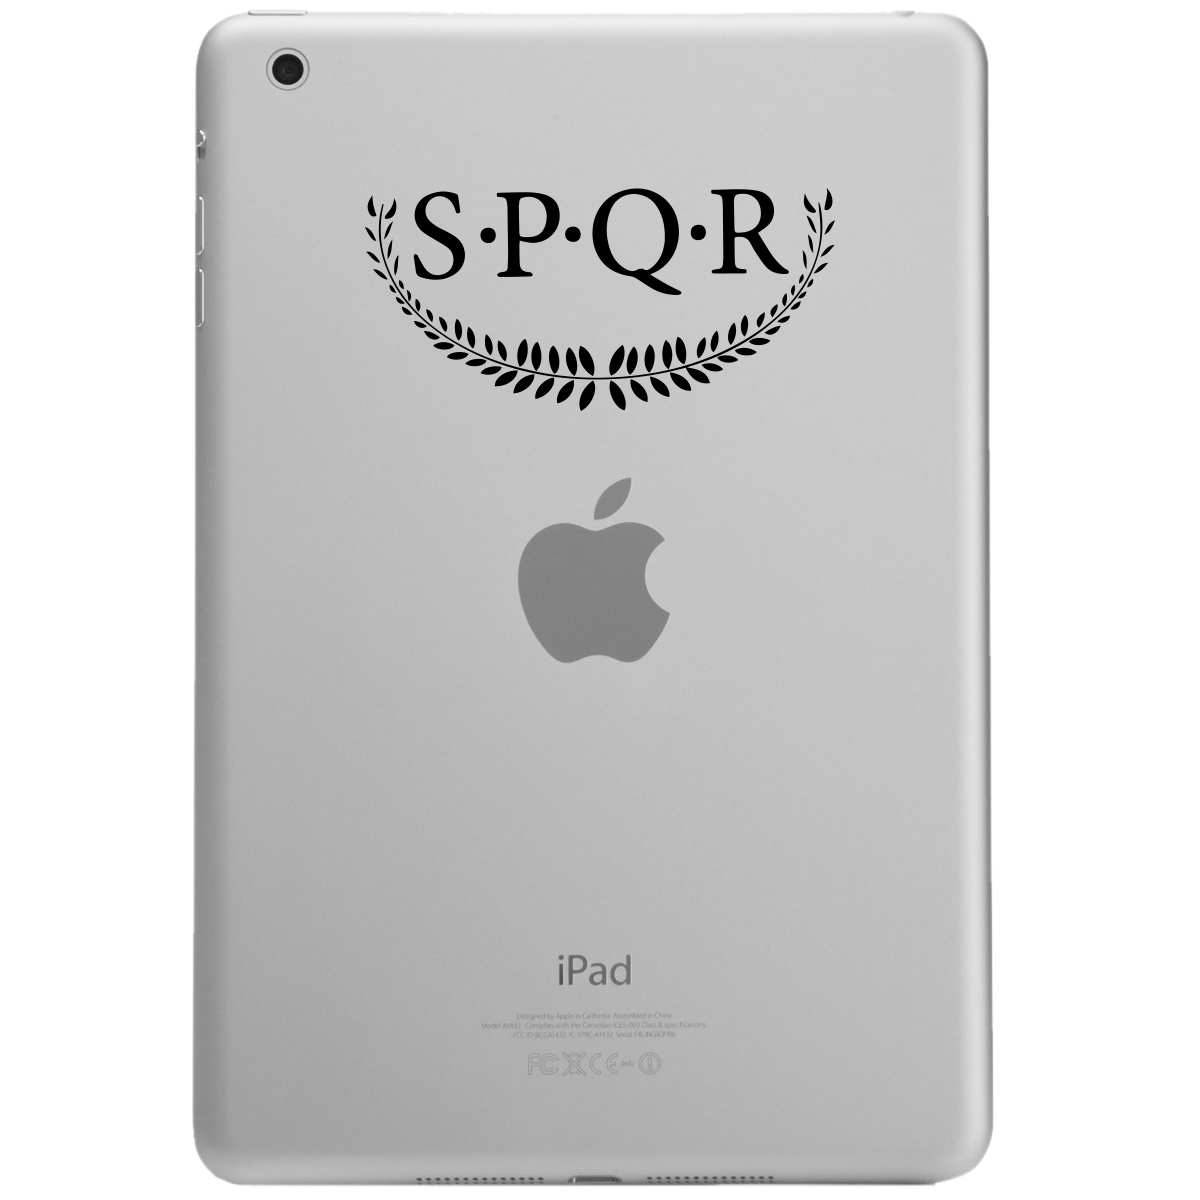 SPQR Roman Strength and Honor iPad Tablet Vinyl Sticker Decal